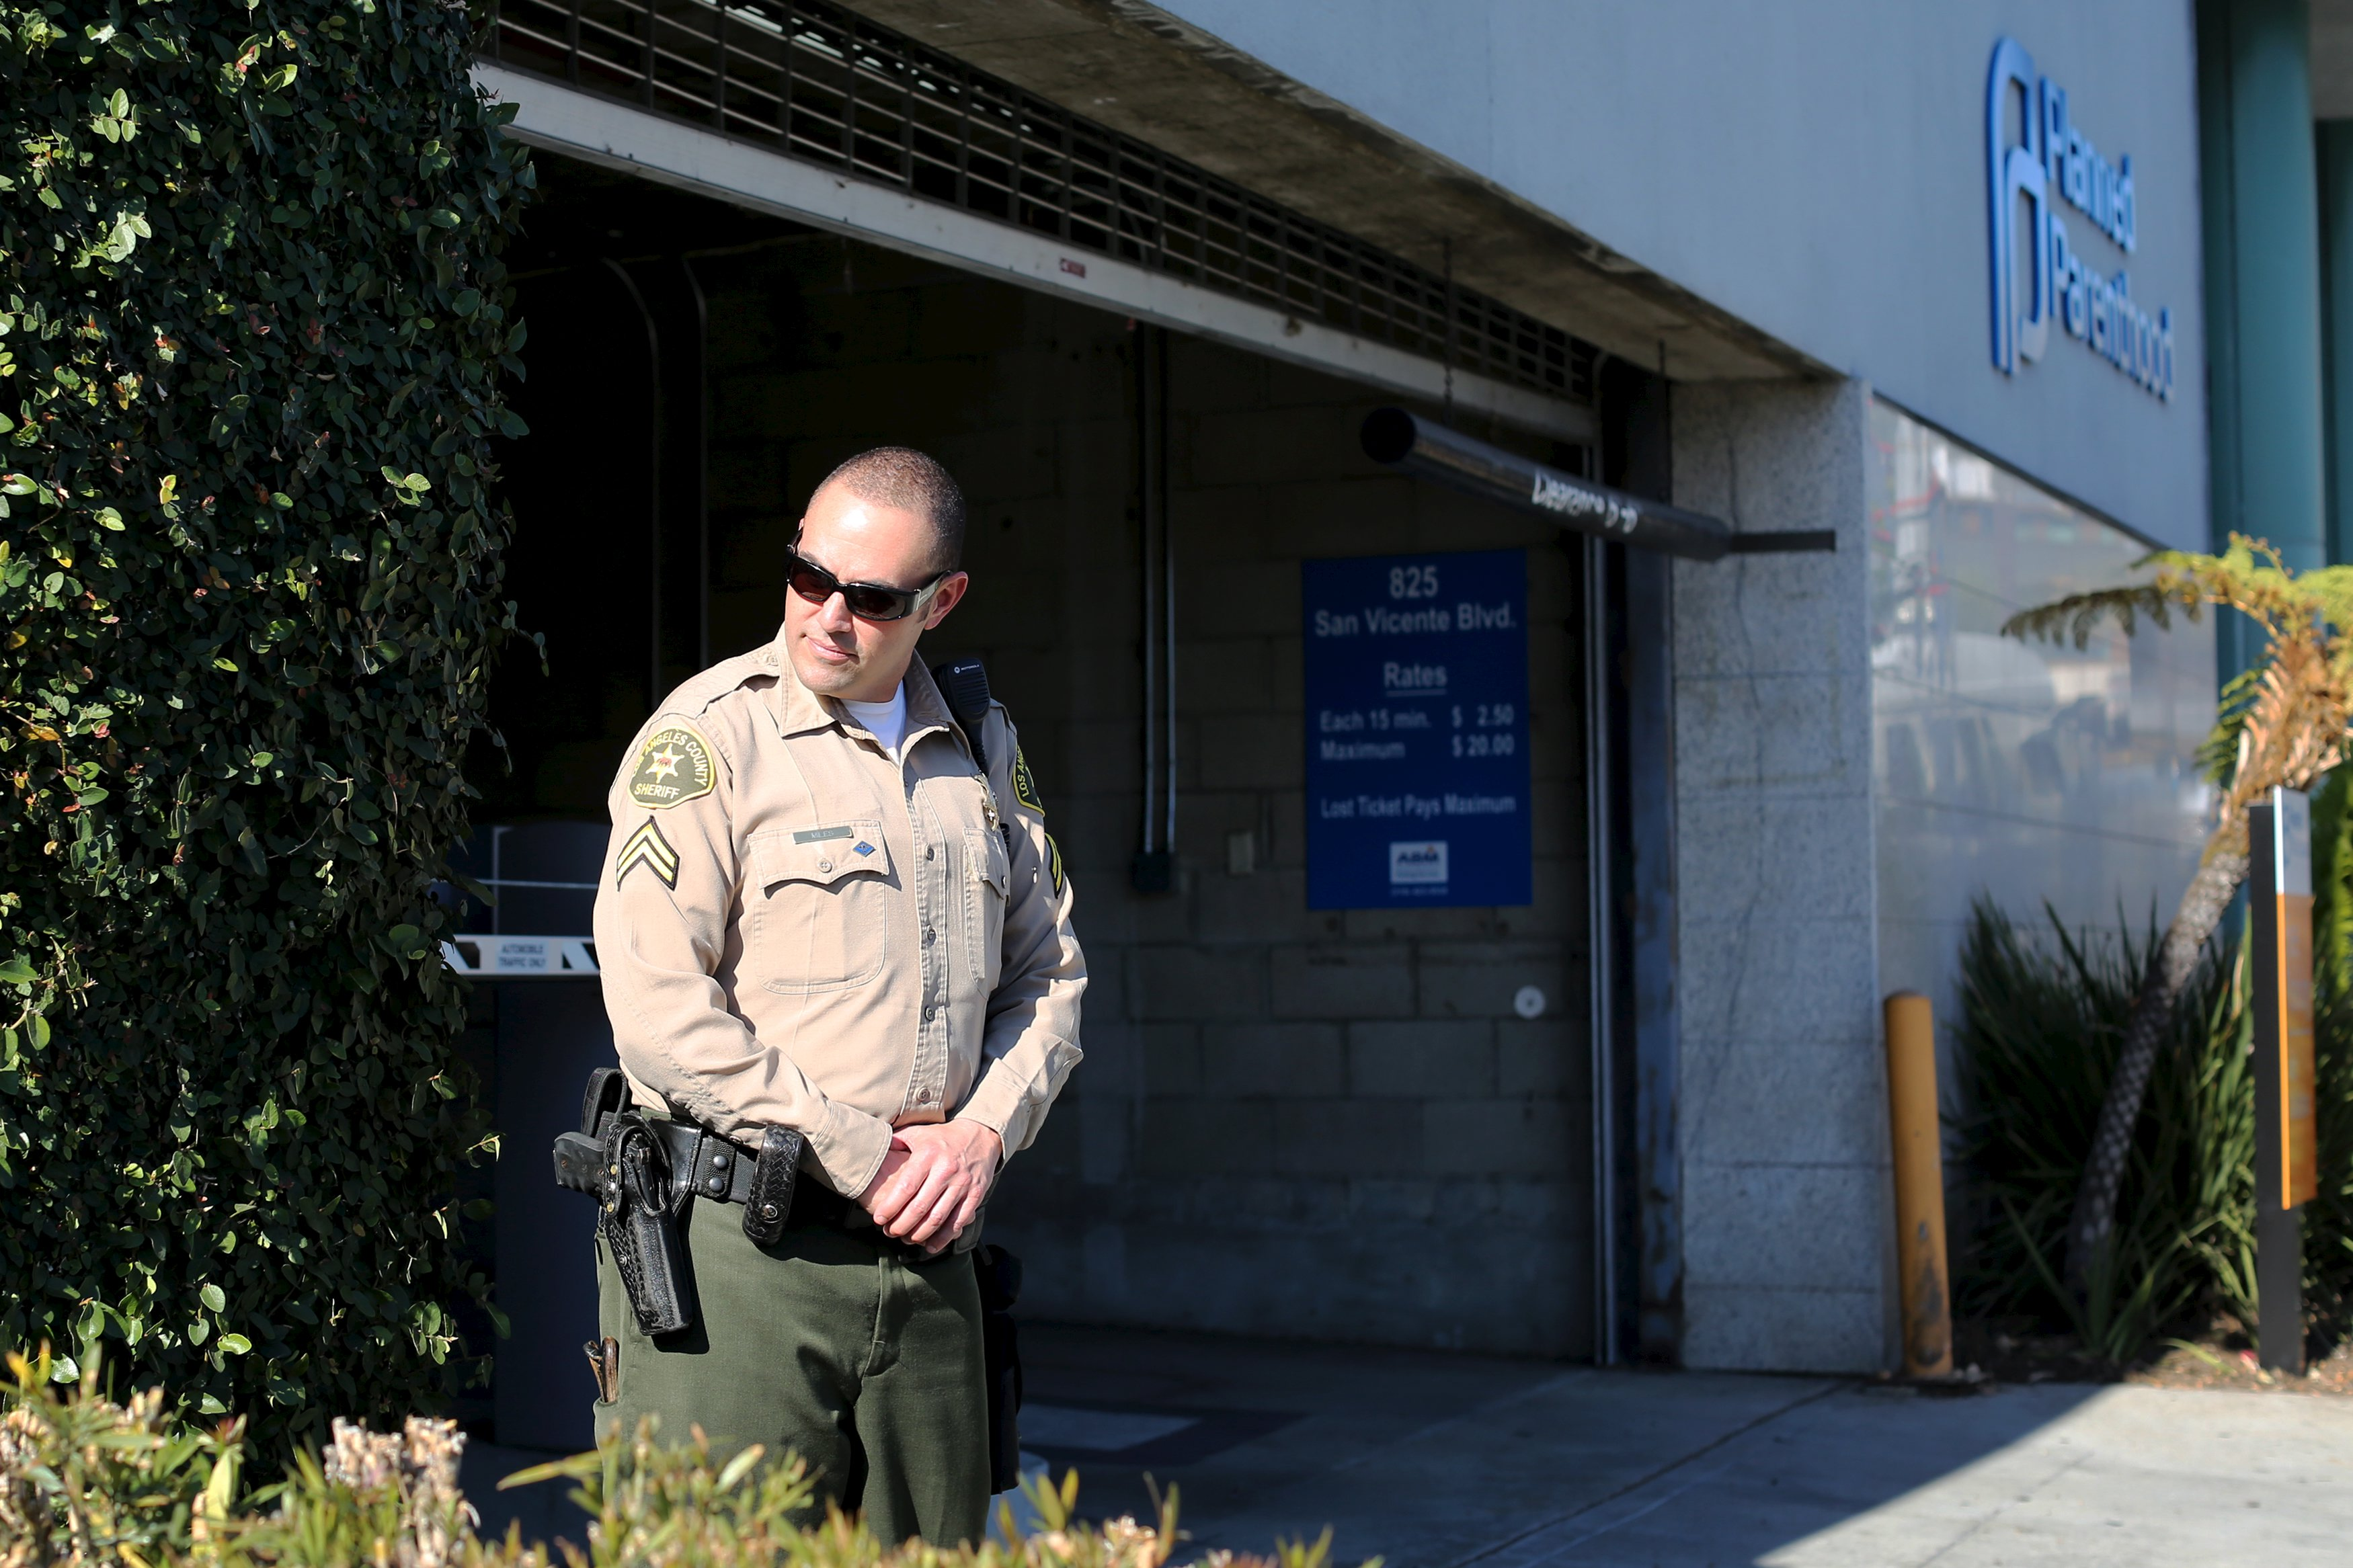 A Sheriffs deputy stands watch outside the opening of a new Planned Parenthood clinic in West Hollywood, California.